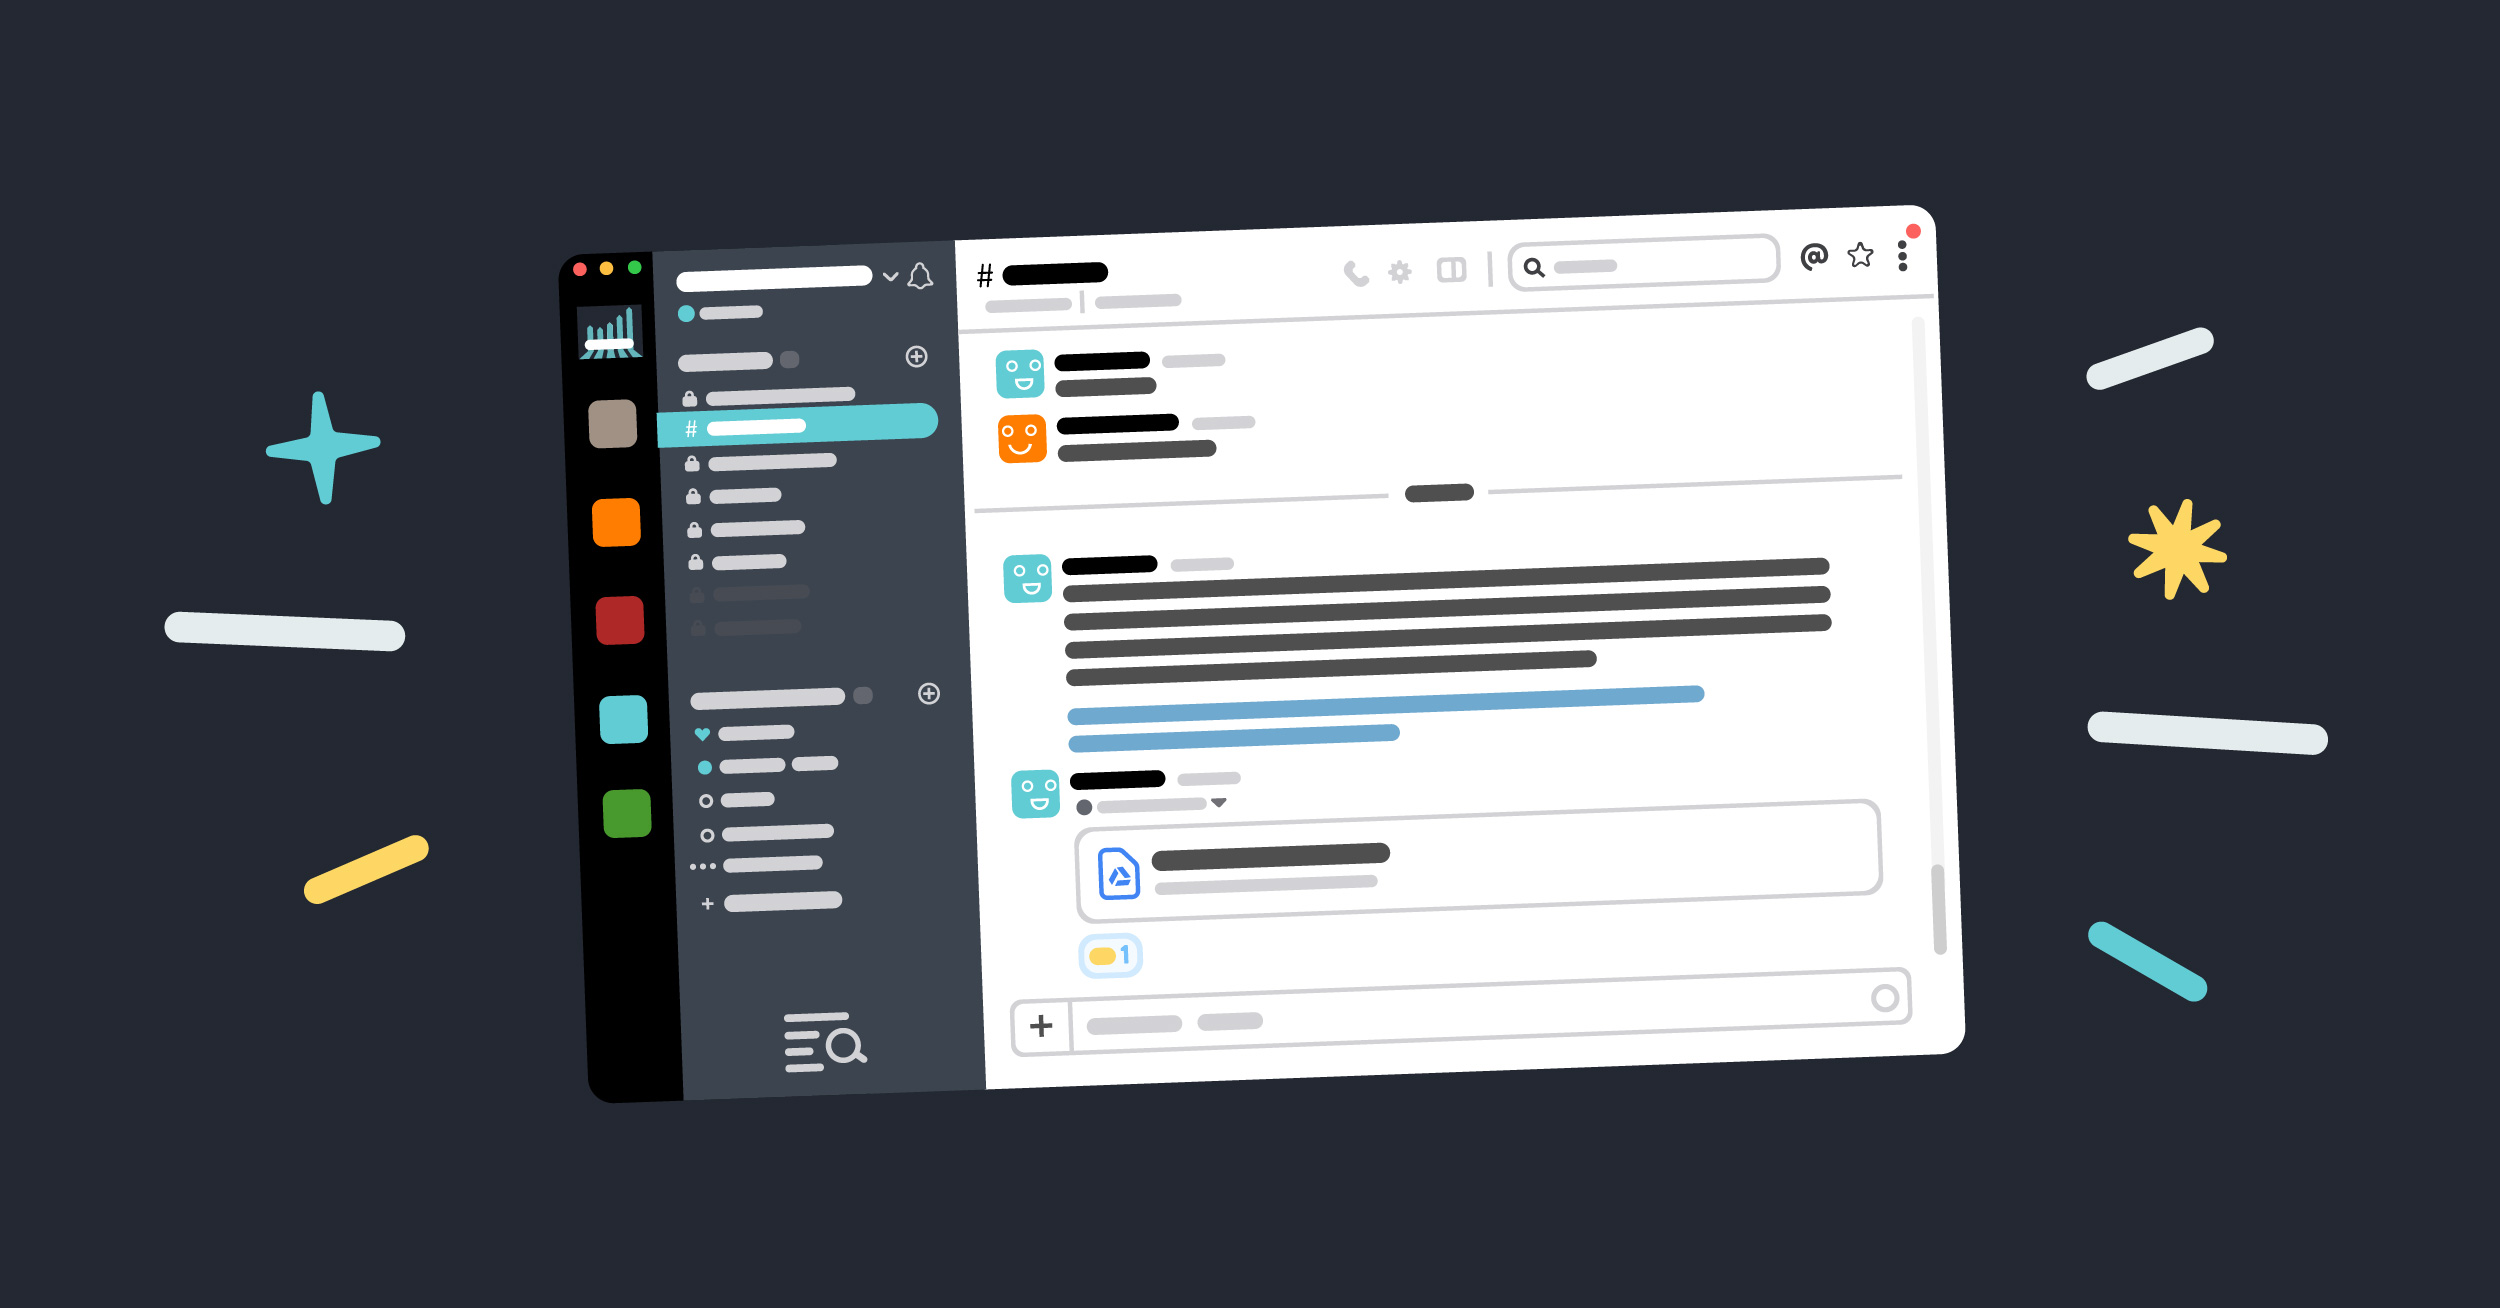 7 Ways to Use Slack to Manage Your Online Business